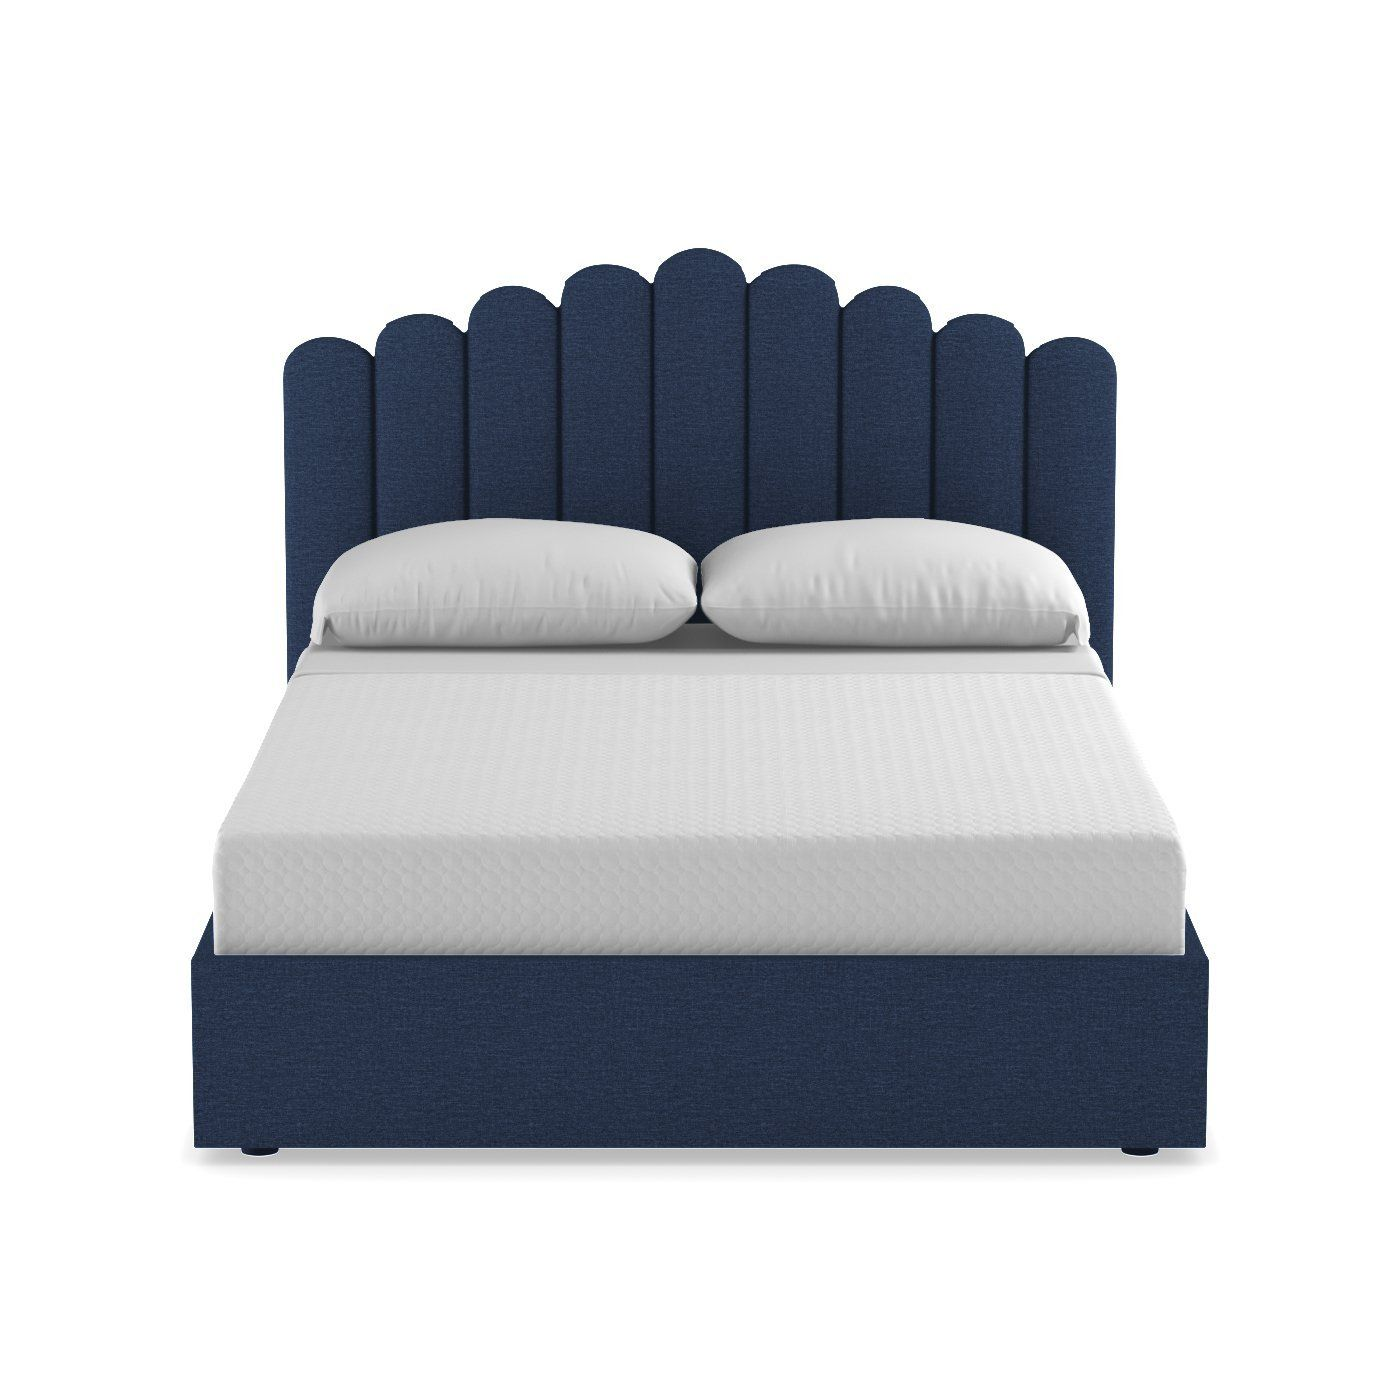 Coco Drive Upholstered Bed From Kyle Schuneman Choice Of Fabrics